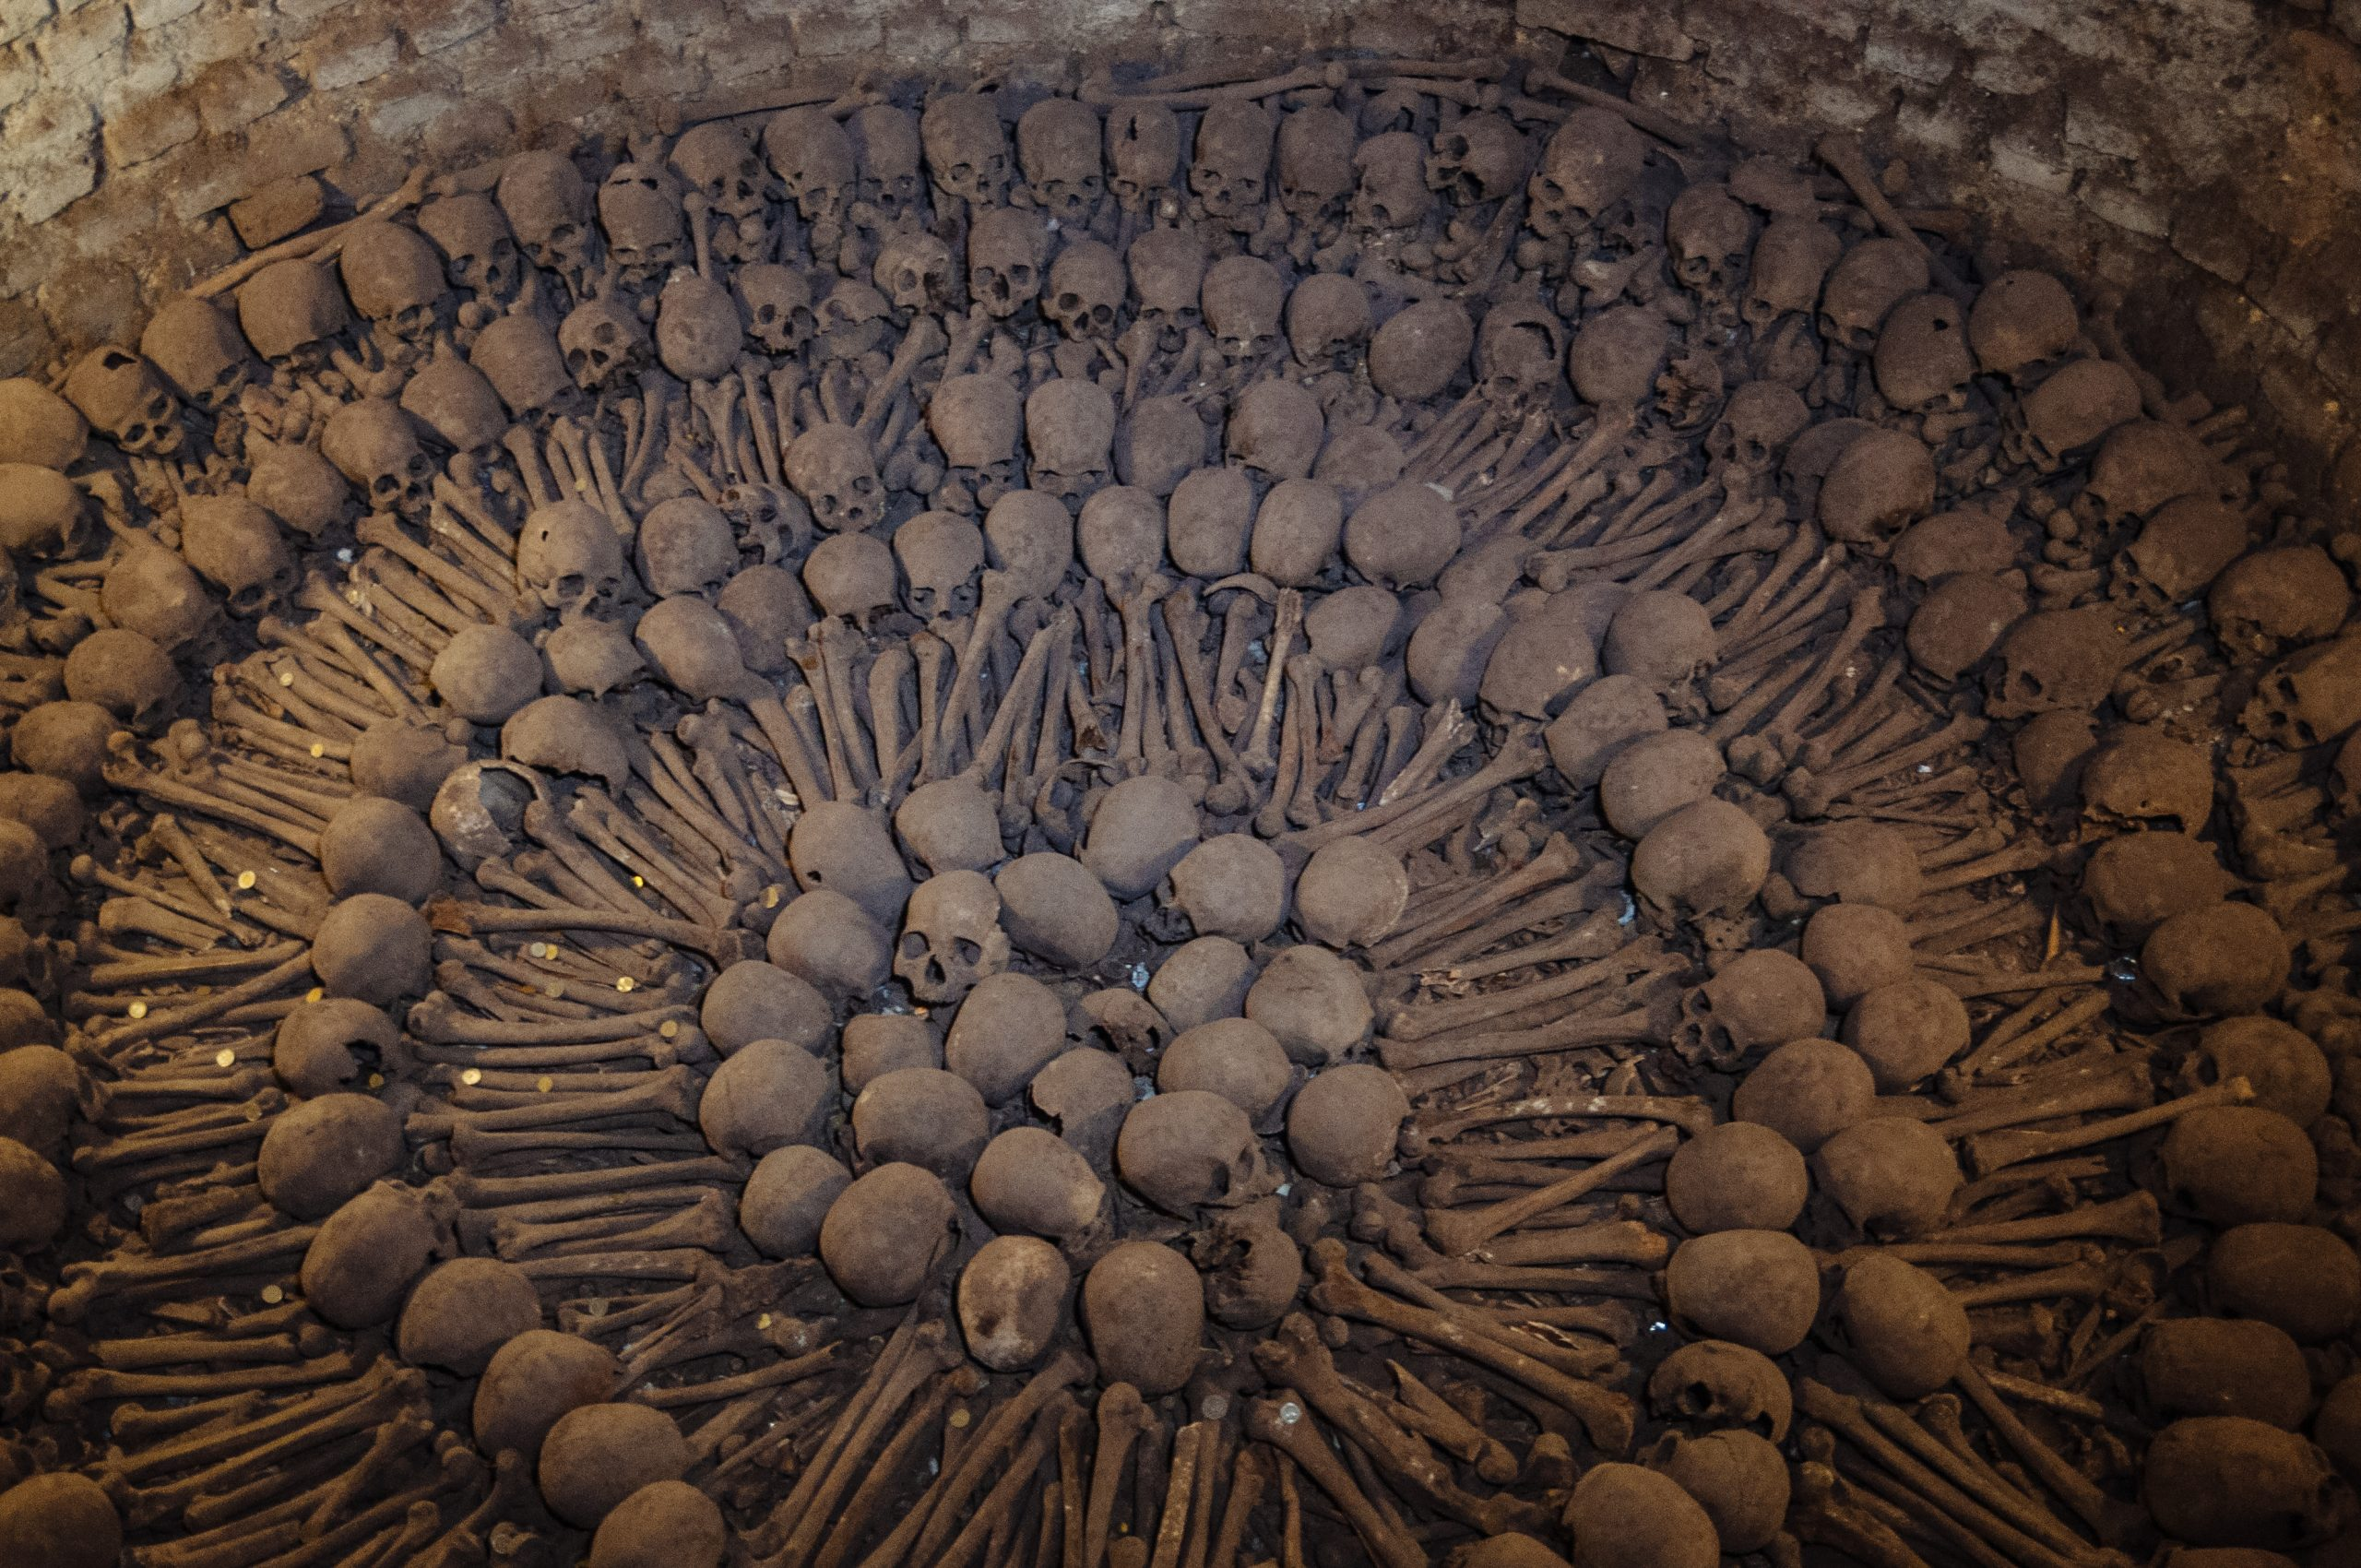 A collection of bones in the San Francisco Church Catacombs